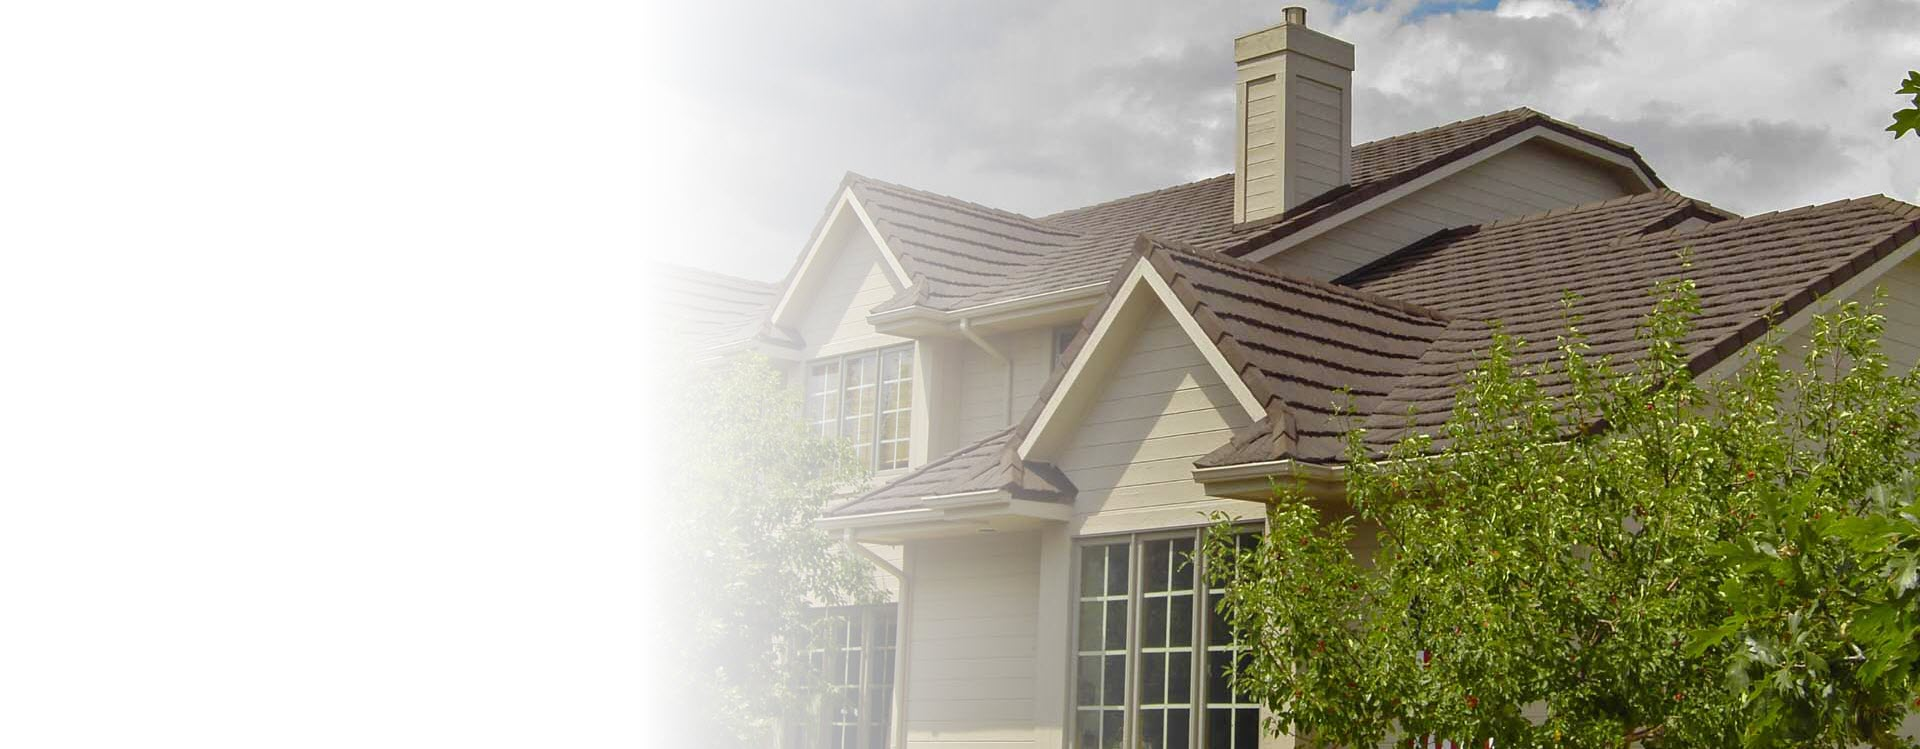 Gerard Boral Steel Roofing Wrightway Home Improvements